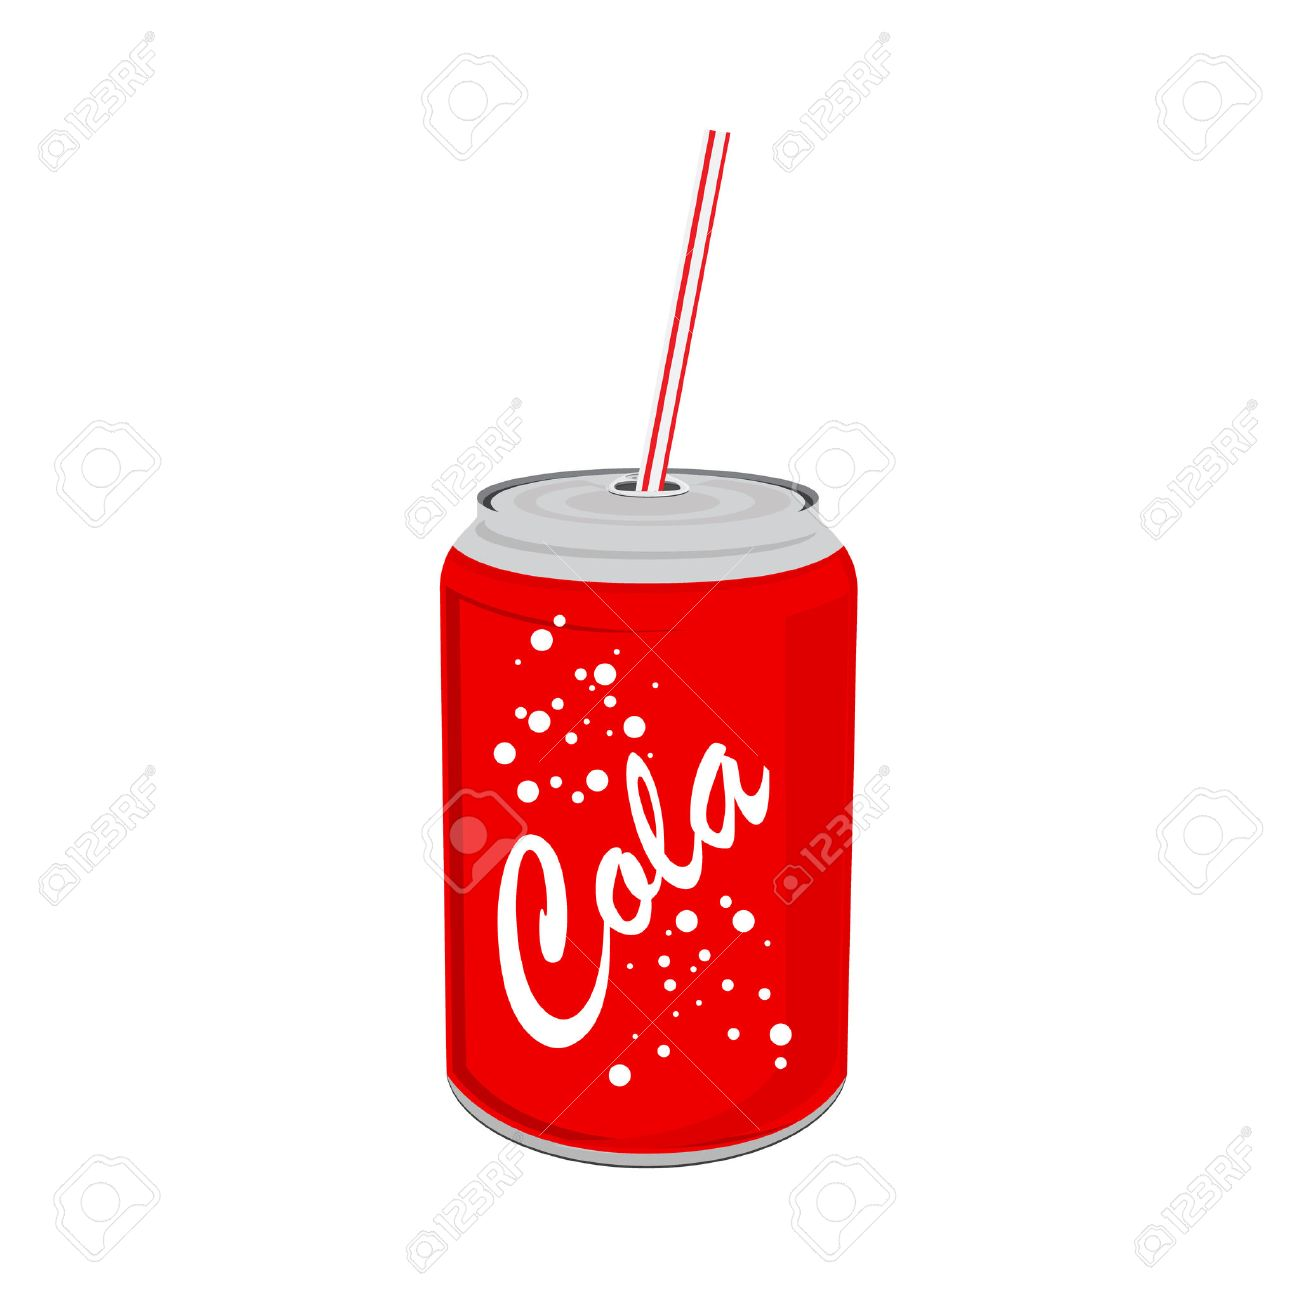 Vector illustration beverage can with straw. Red tin cola can with label. Soda can icon. - 55645396